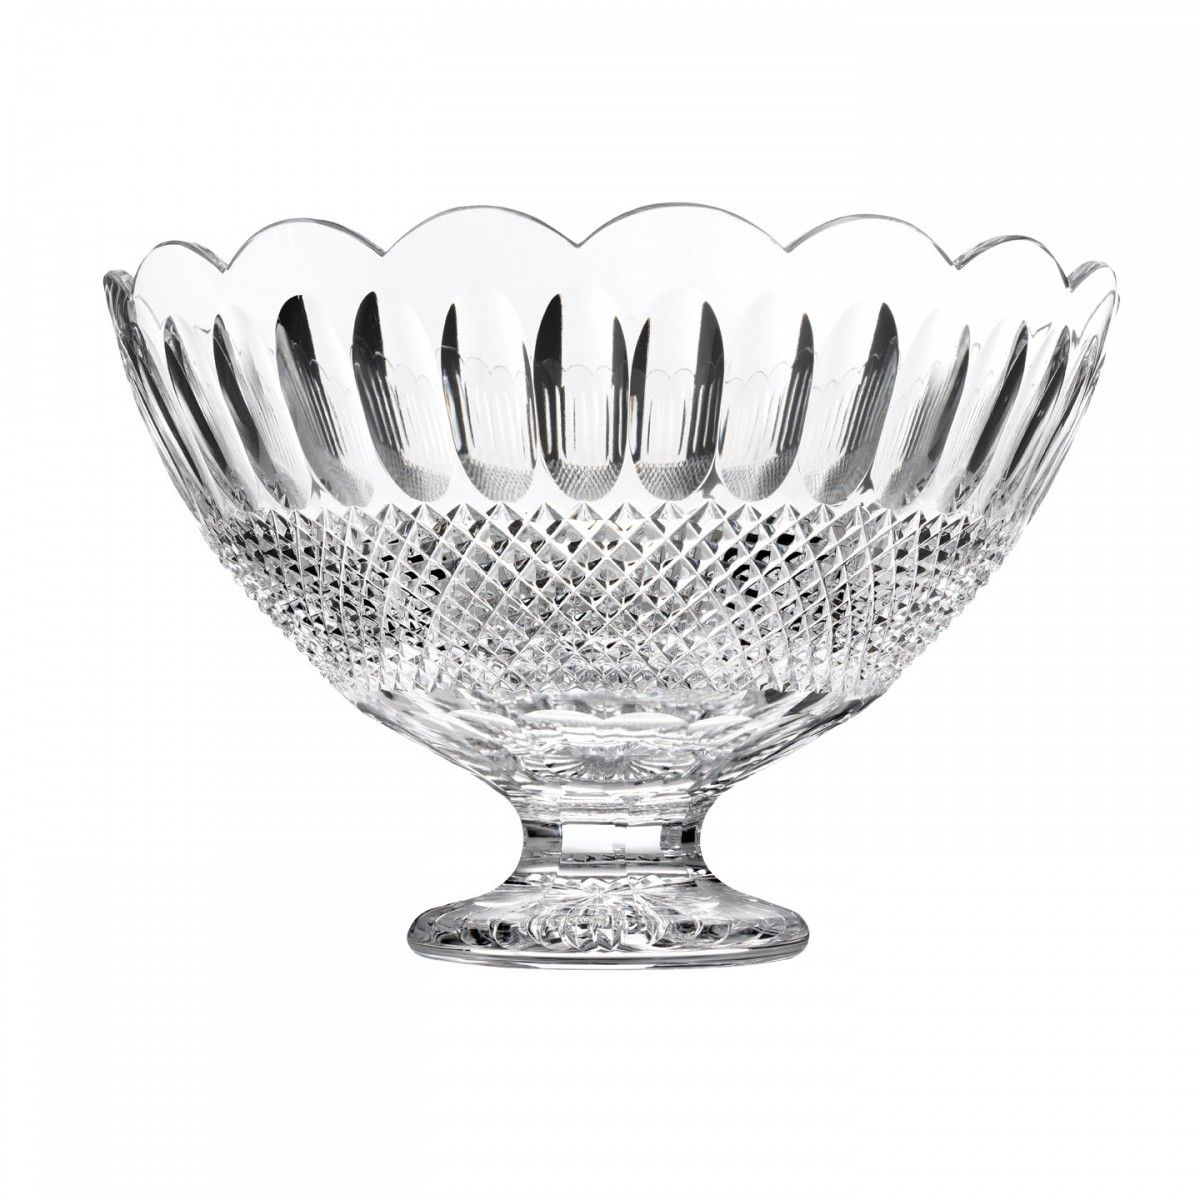 House of waterford crystal colleen 60th anniversary 12in